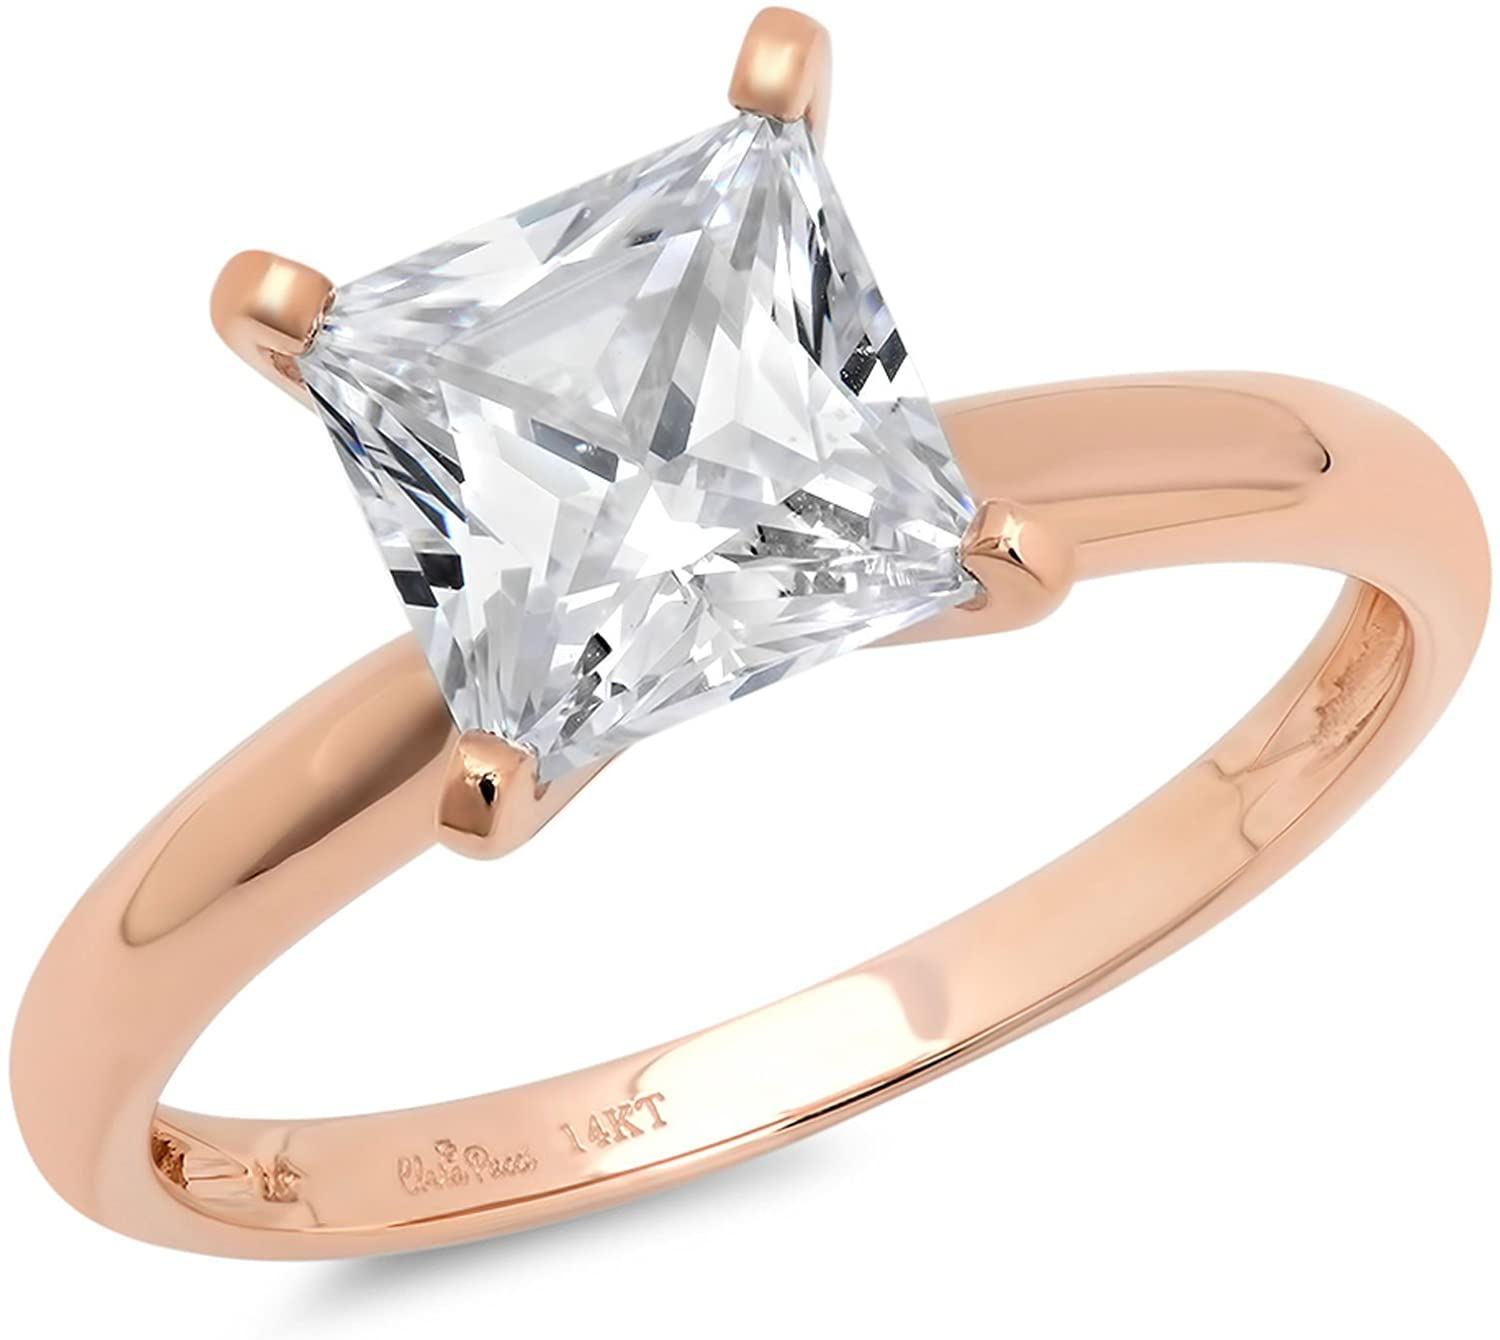 Clara Pucci 2.0 CT Princess Brilliant Cut Simulated Diamond CZ Solitaire Engagement Wedding Ring Solid 14k Rose Gold